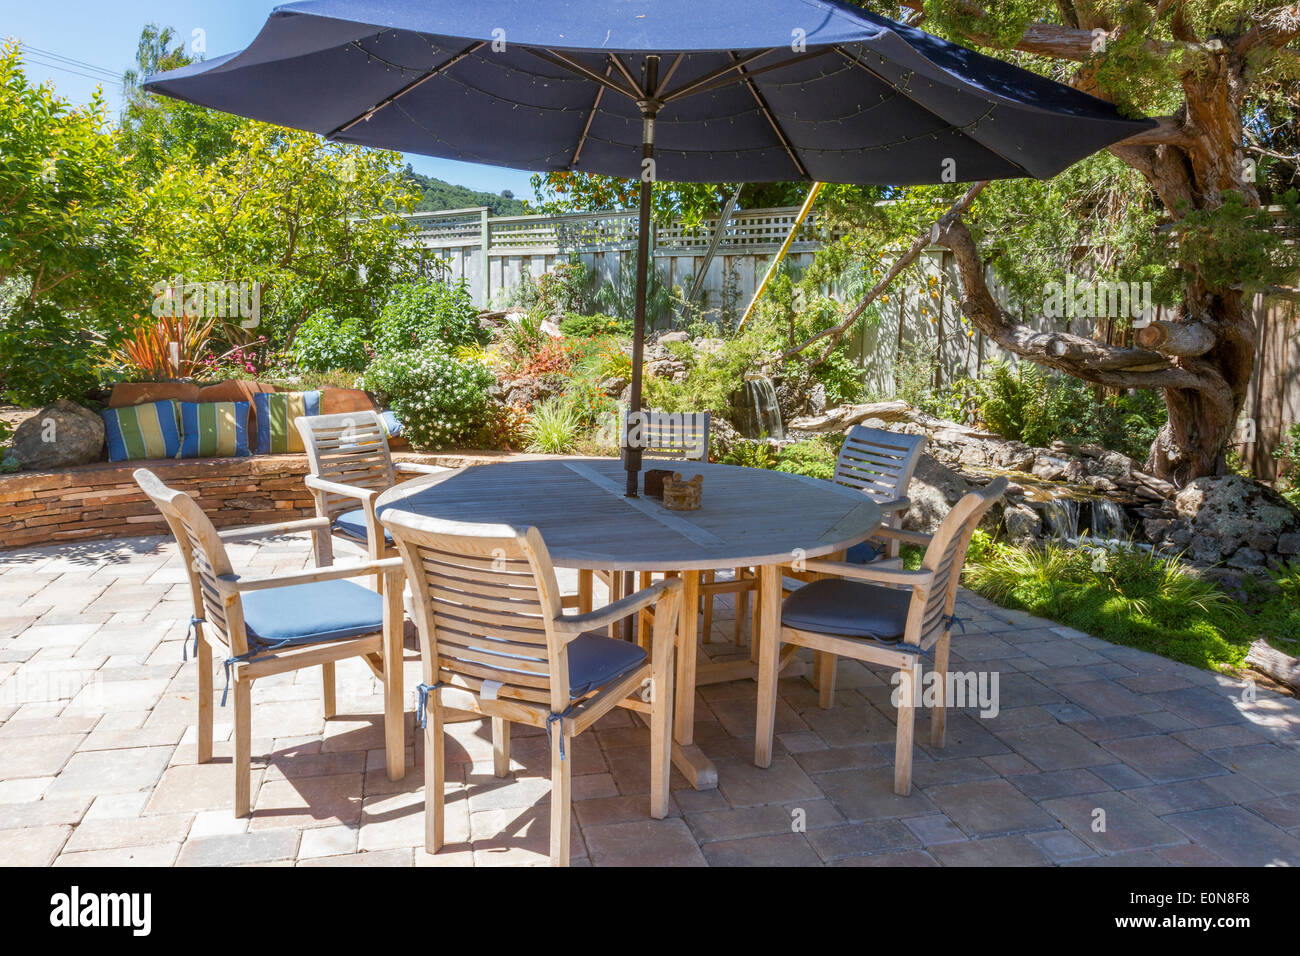 Beautiful backyard landscaping with stream water feature behind patio dining table - Stock Image